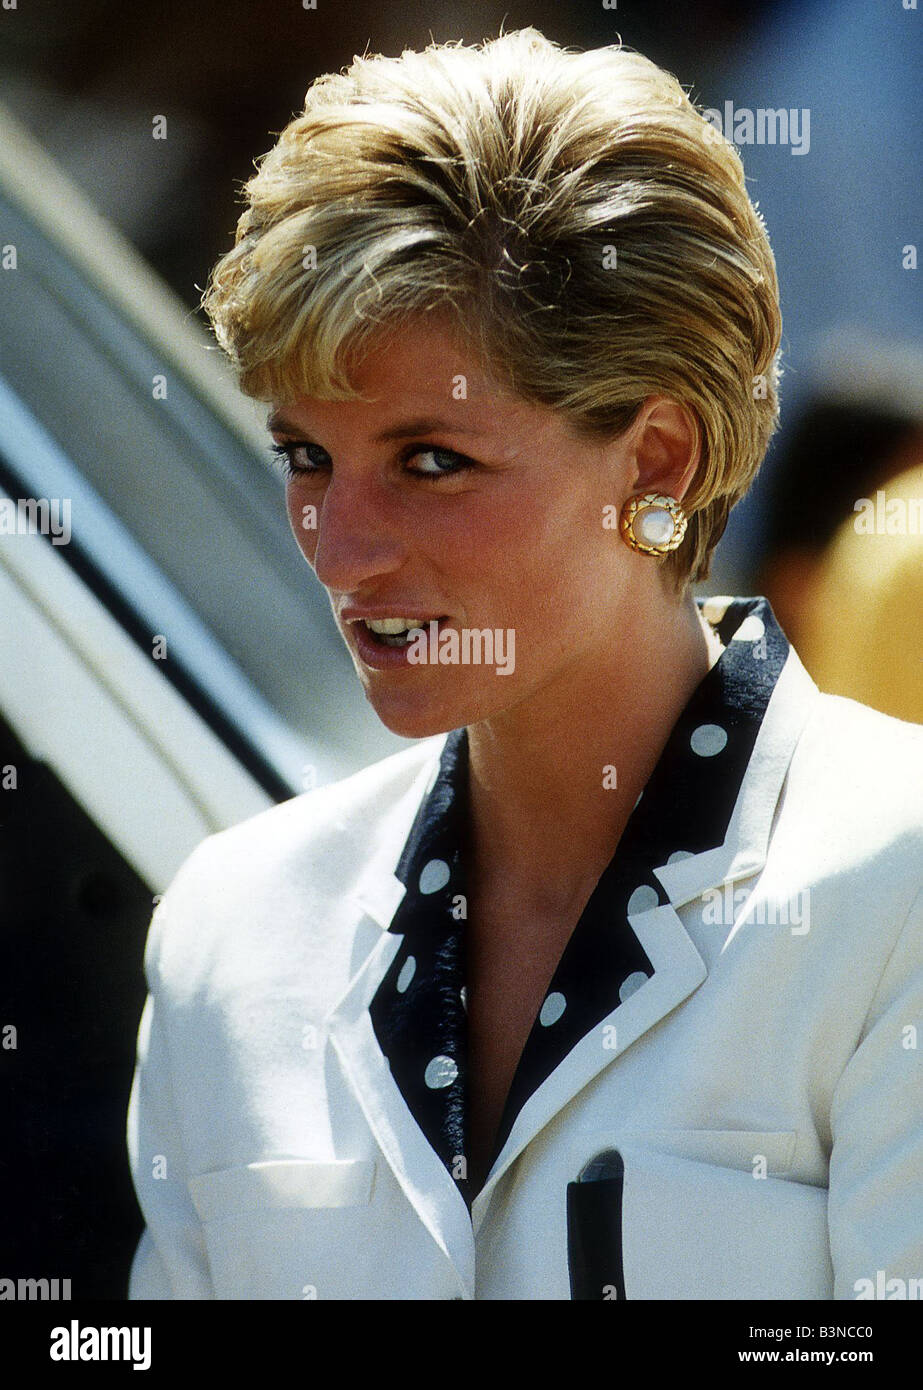 Princess Diana showing her new hairstyle July 1990 Stock